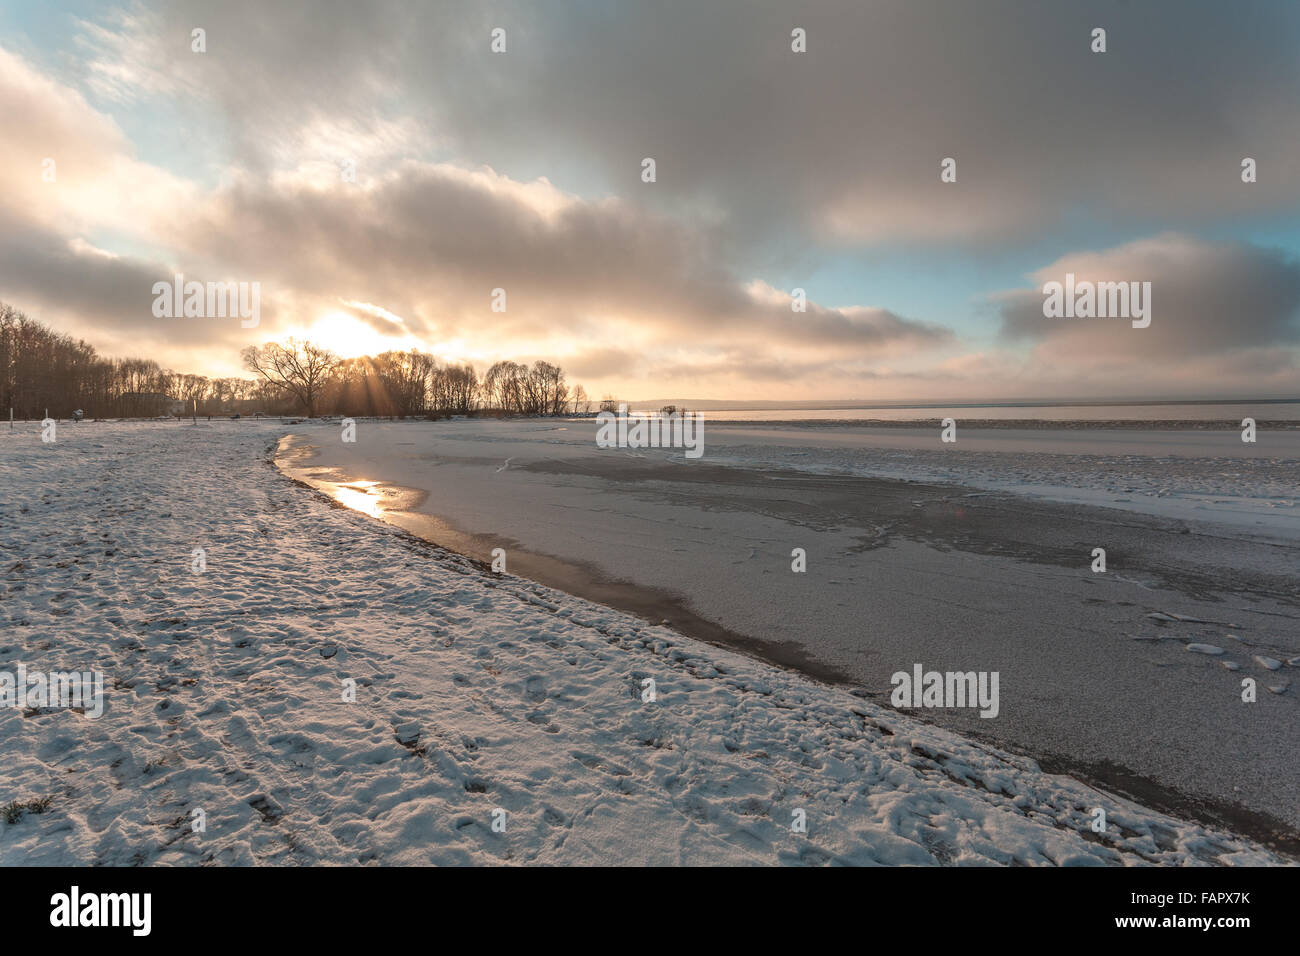 Winter evening on the bank of the lake with the first ice and snow. - Stock Image